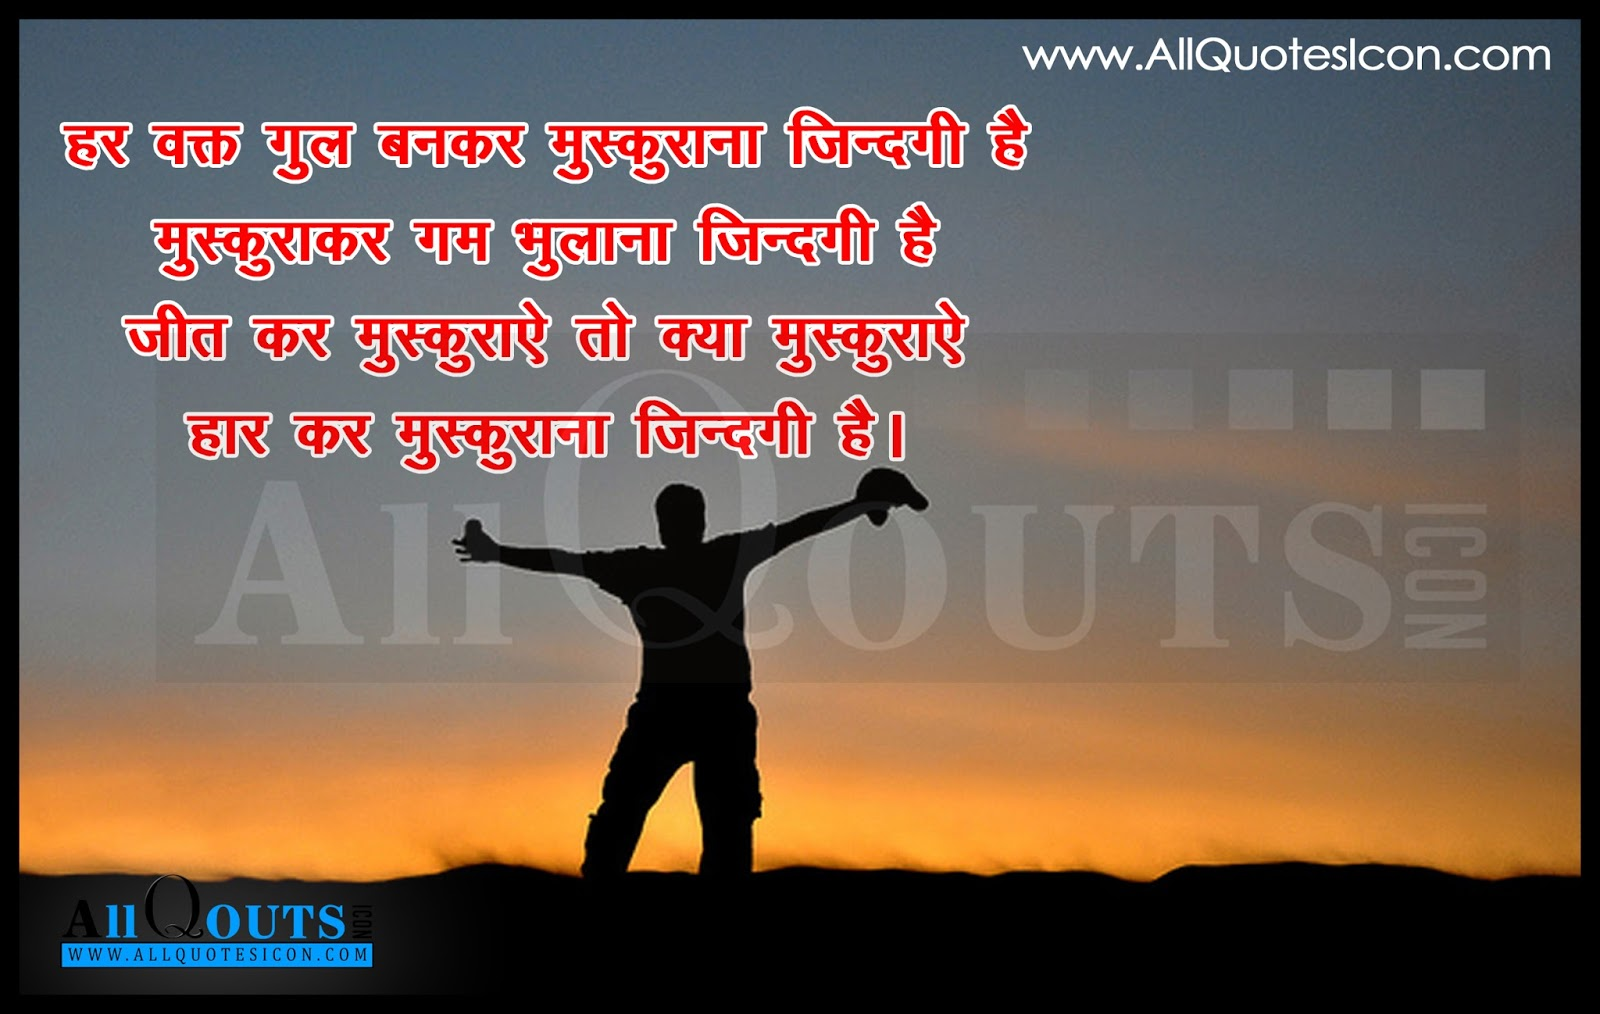 Best Thoughts And Quotes In Hindi Wwwallquotesiconcom Telugu